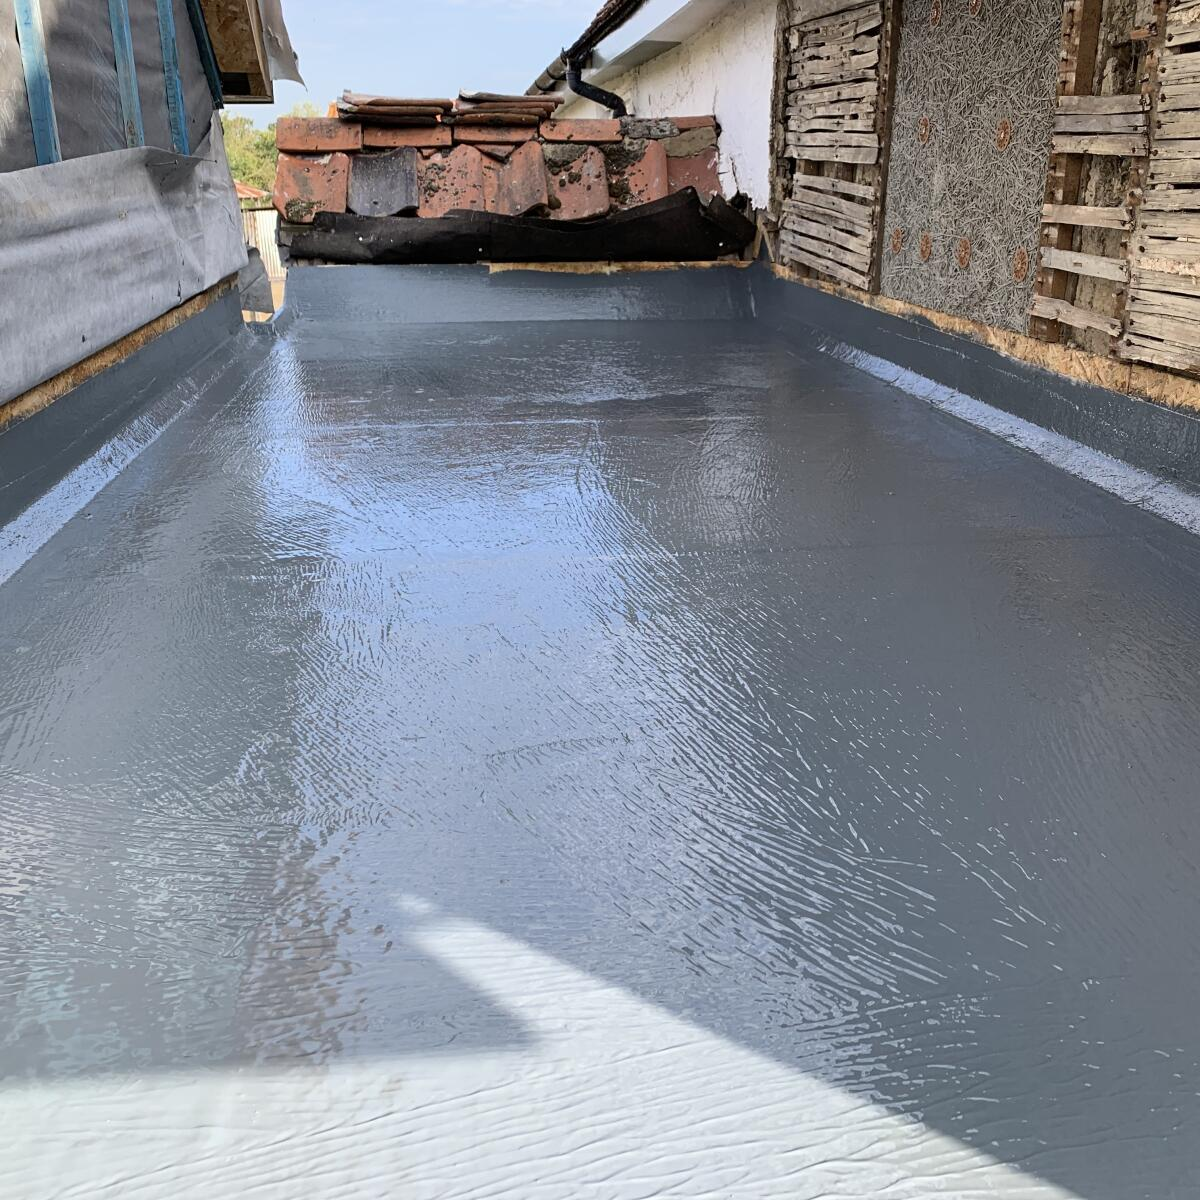 Composite Roof Supplies Ltd 5 star review on 22nd September 2019